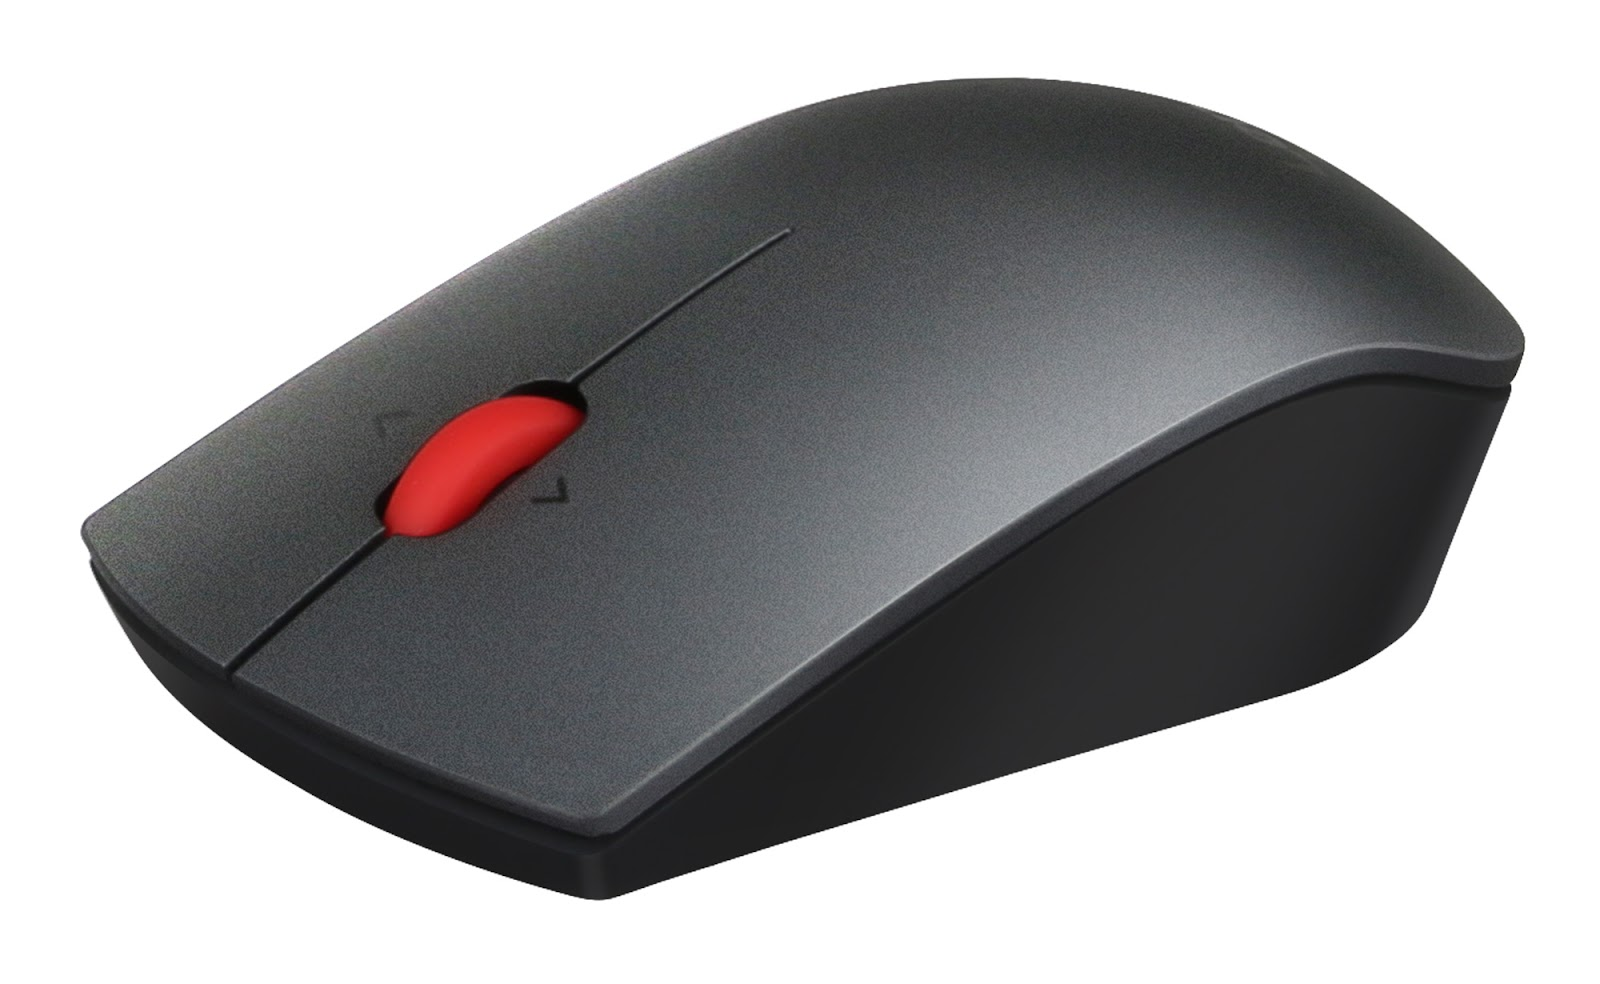 Фото 1. Мышь Lenovo Professional Wireless Laser Mouse (4X30H56886)